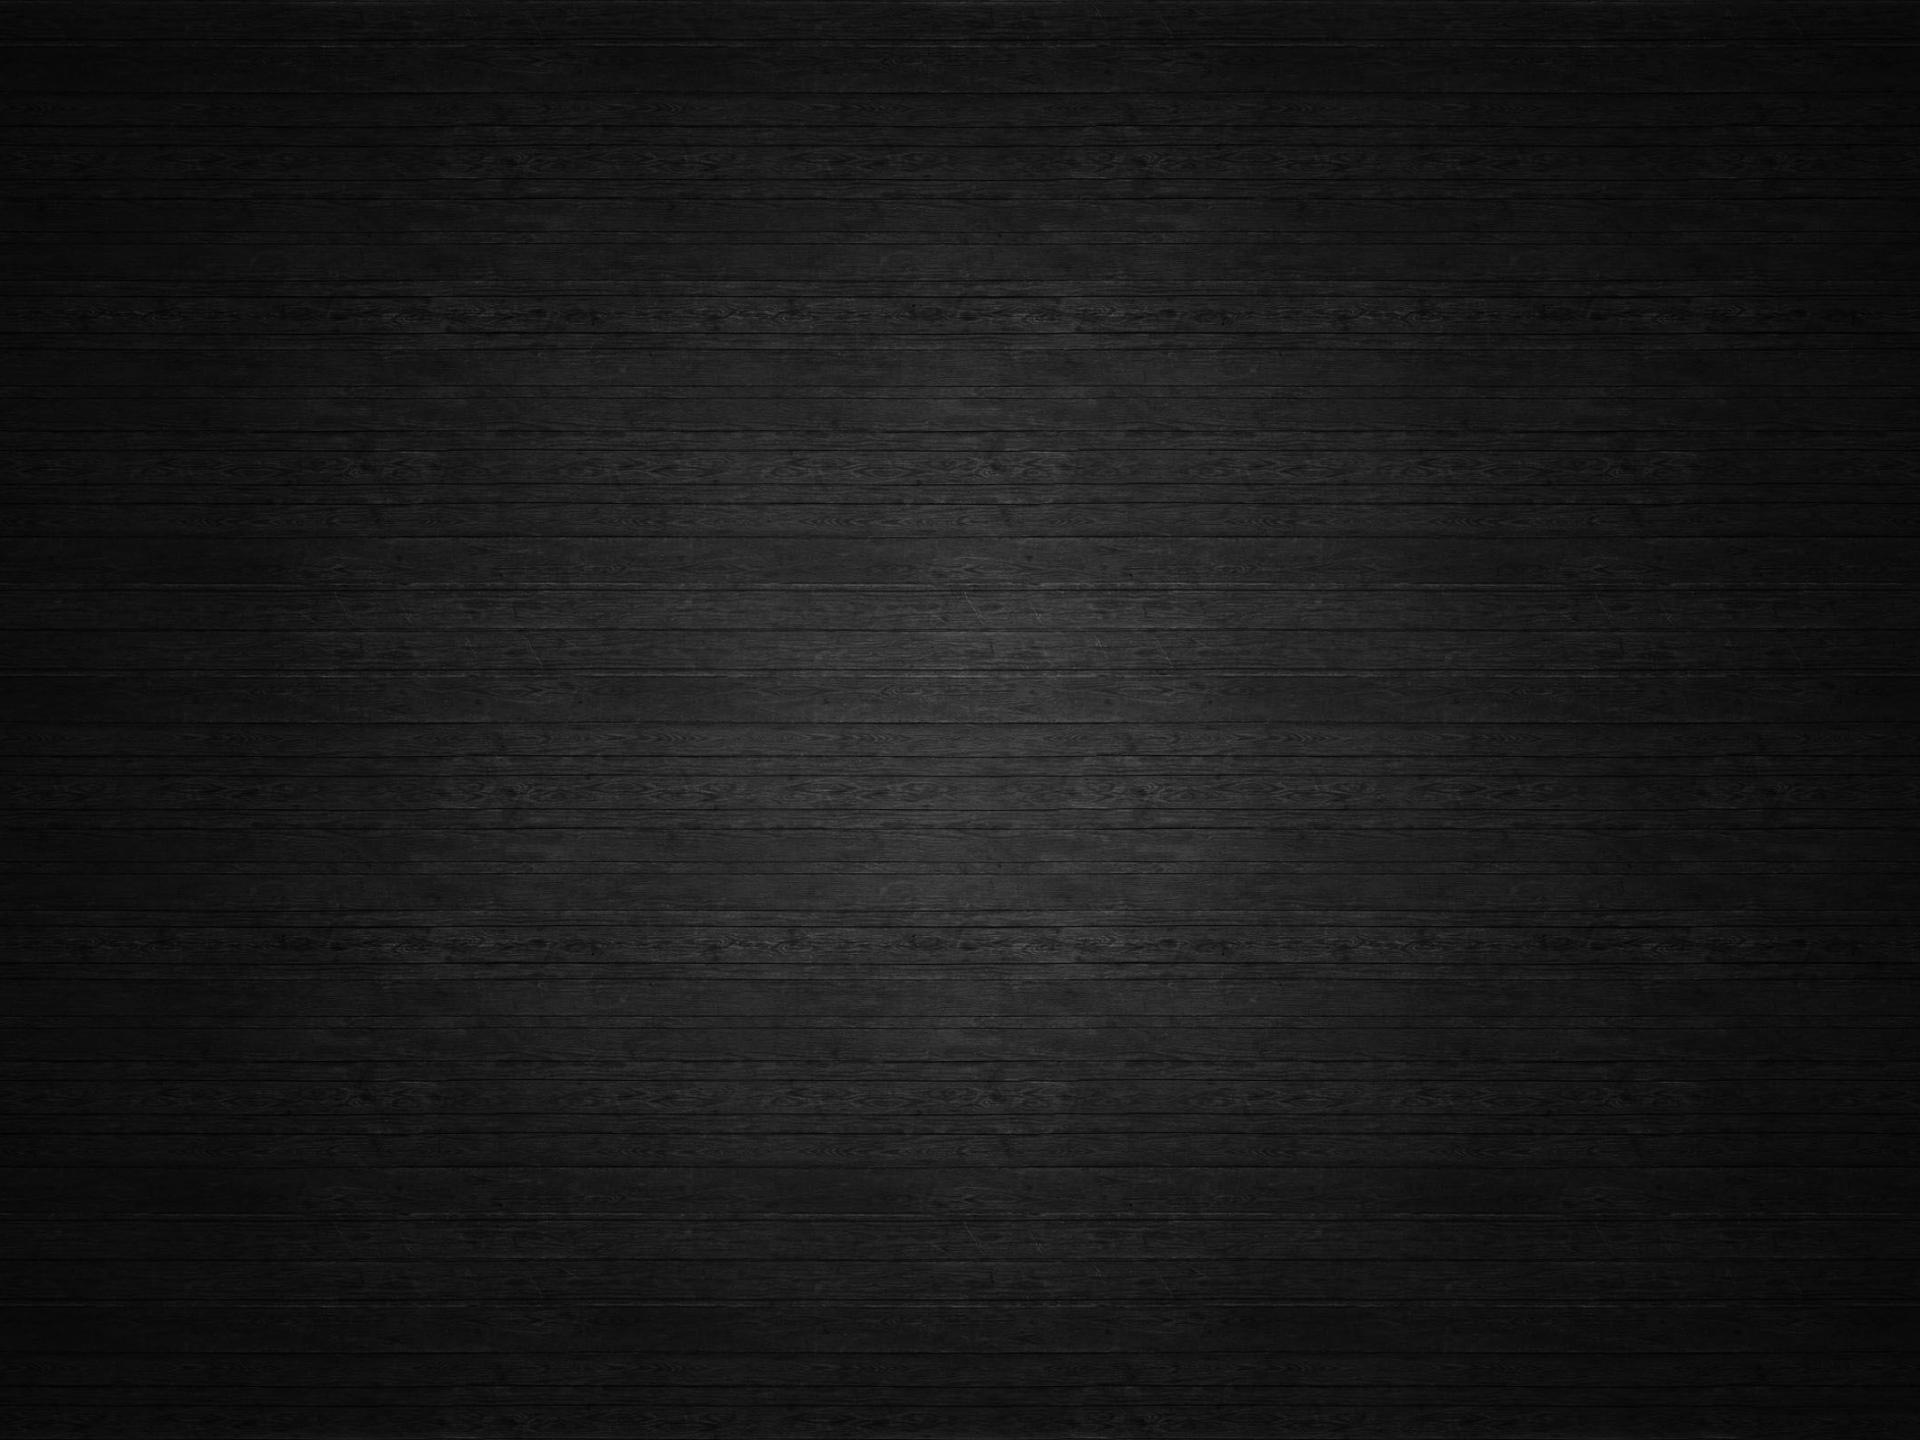 Abstract Black Background 1920x1440